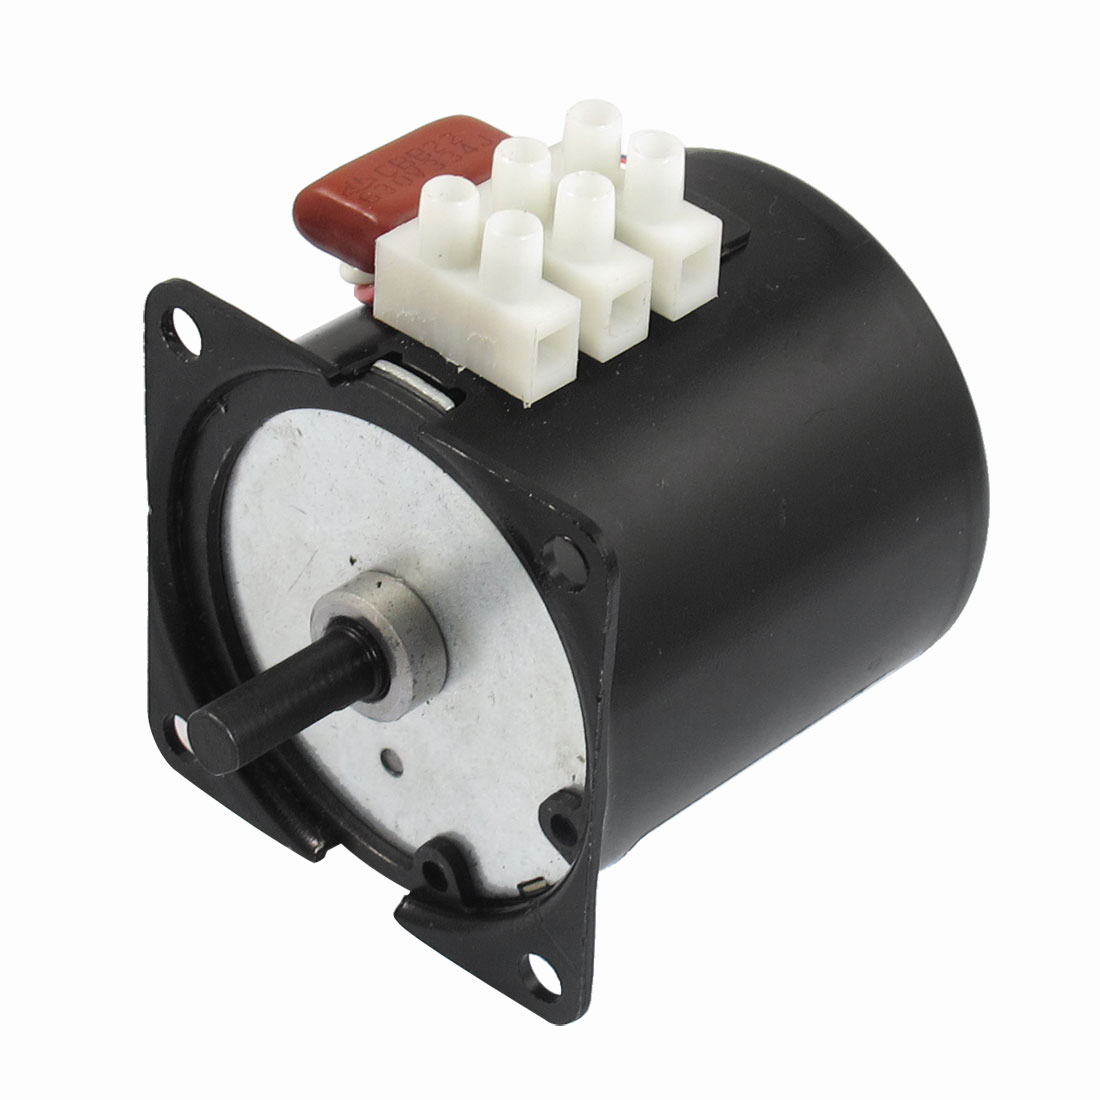 AC 220V 0.1A 14W 80RPM Synchronous Reduction Gear Box Motor